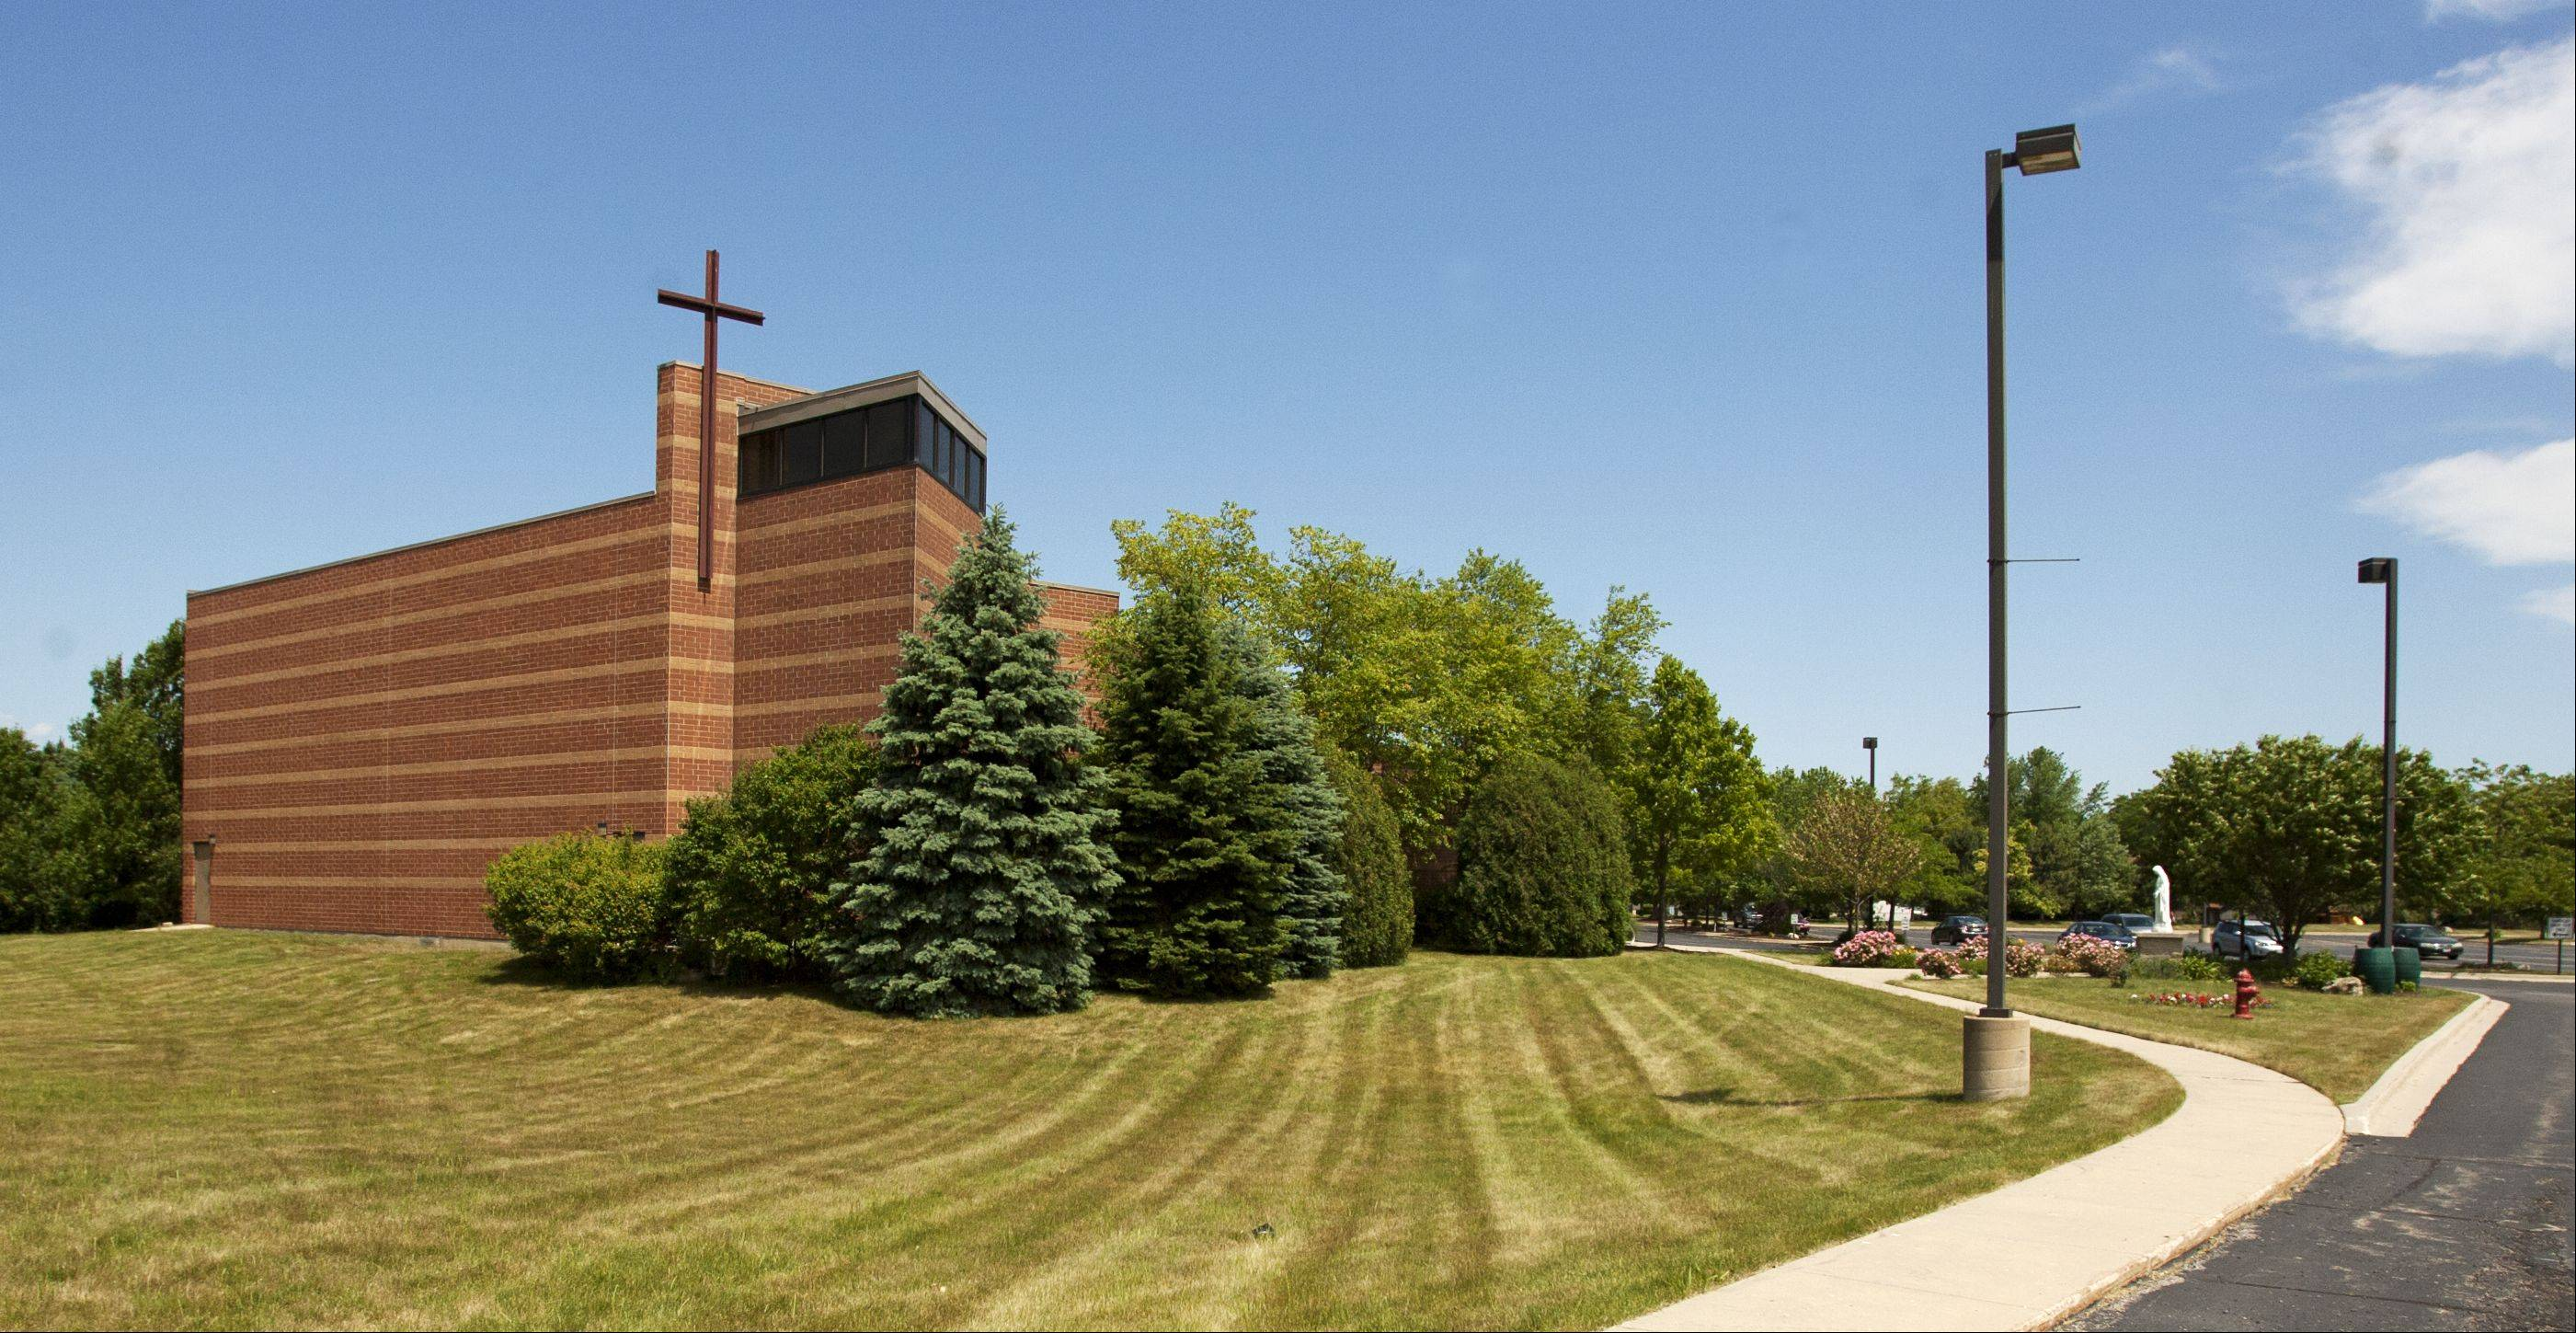 Corpus Christi Catholic Church in Carol Stream is seeking village permission to install and play bells on the exterior of the church.